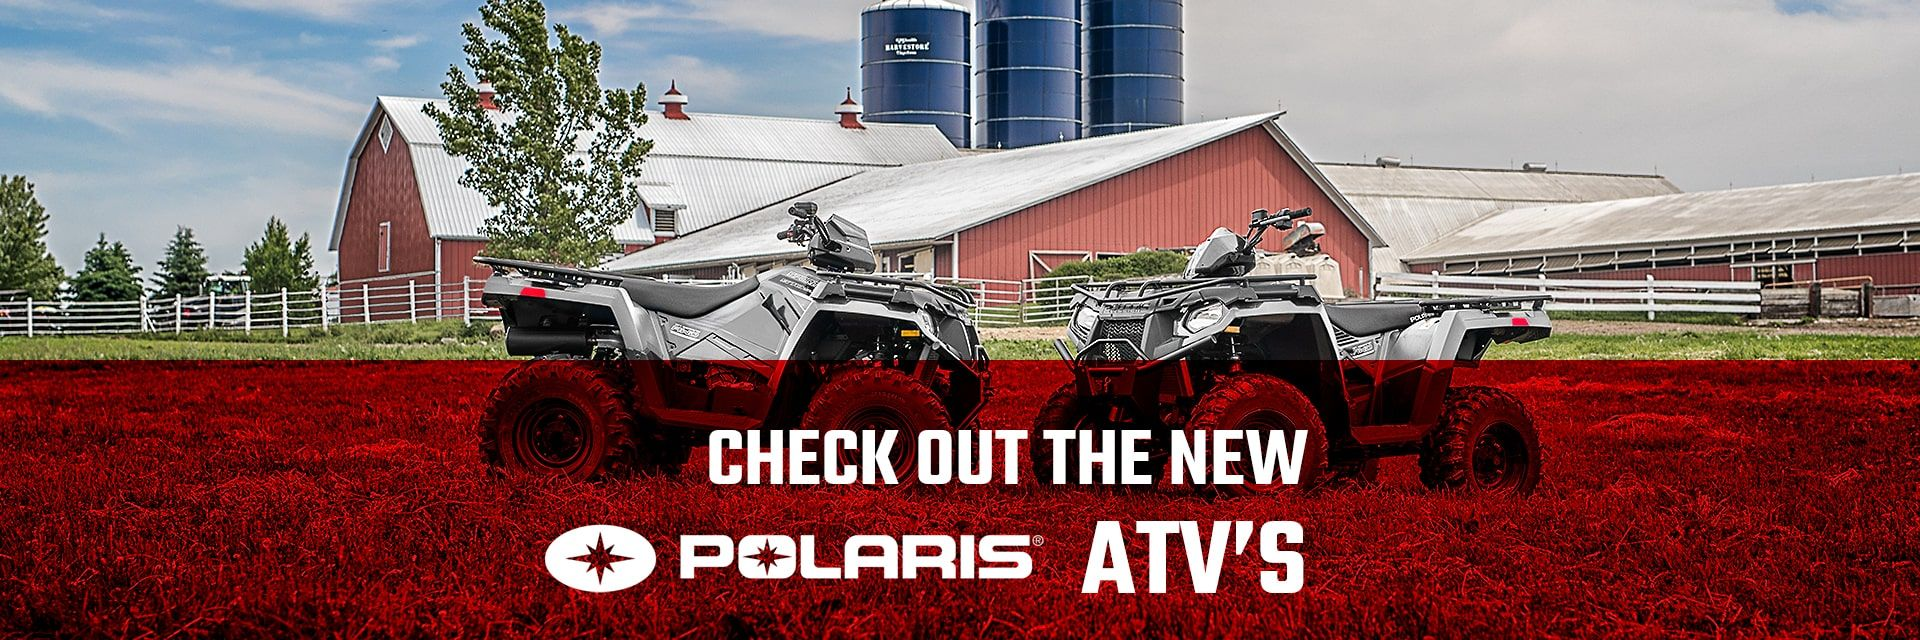 New Polaris ATVs